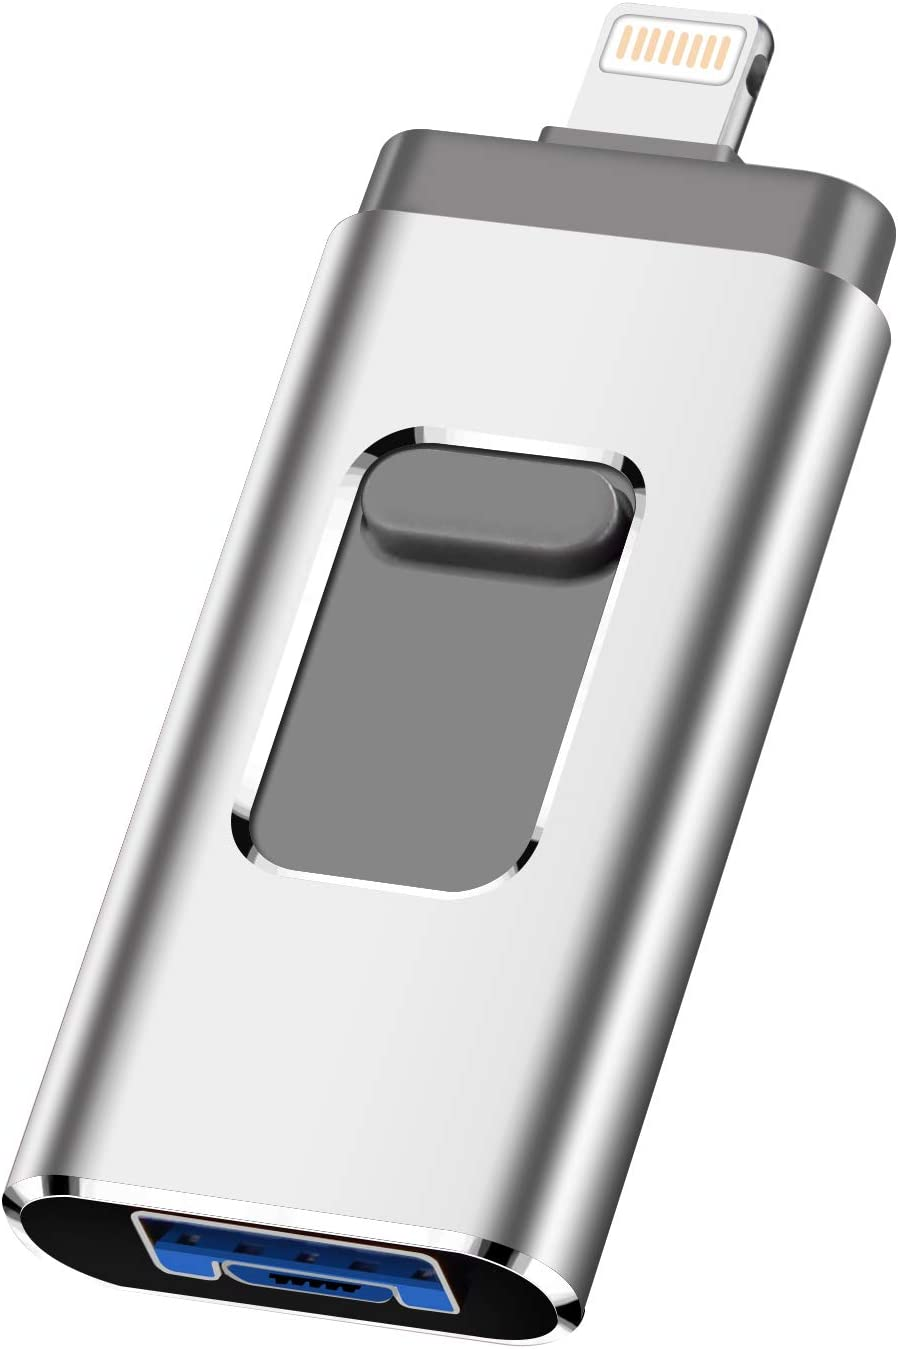 iOS Flash Drive for iPhone Photo Stick 512GB Memory Stick USB 3.0 Flash Drive Thumb Drive for iPhone iPad Android and Computers (Silver512gb)